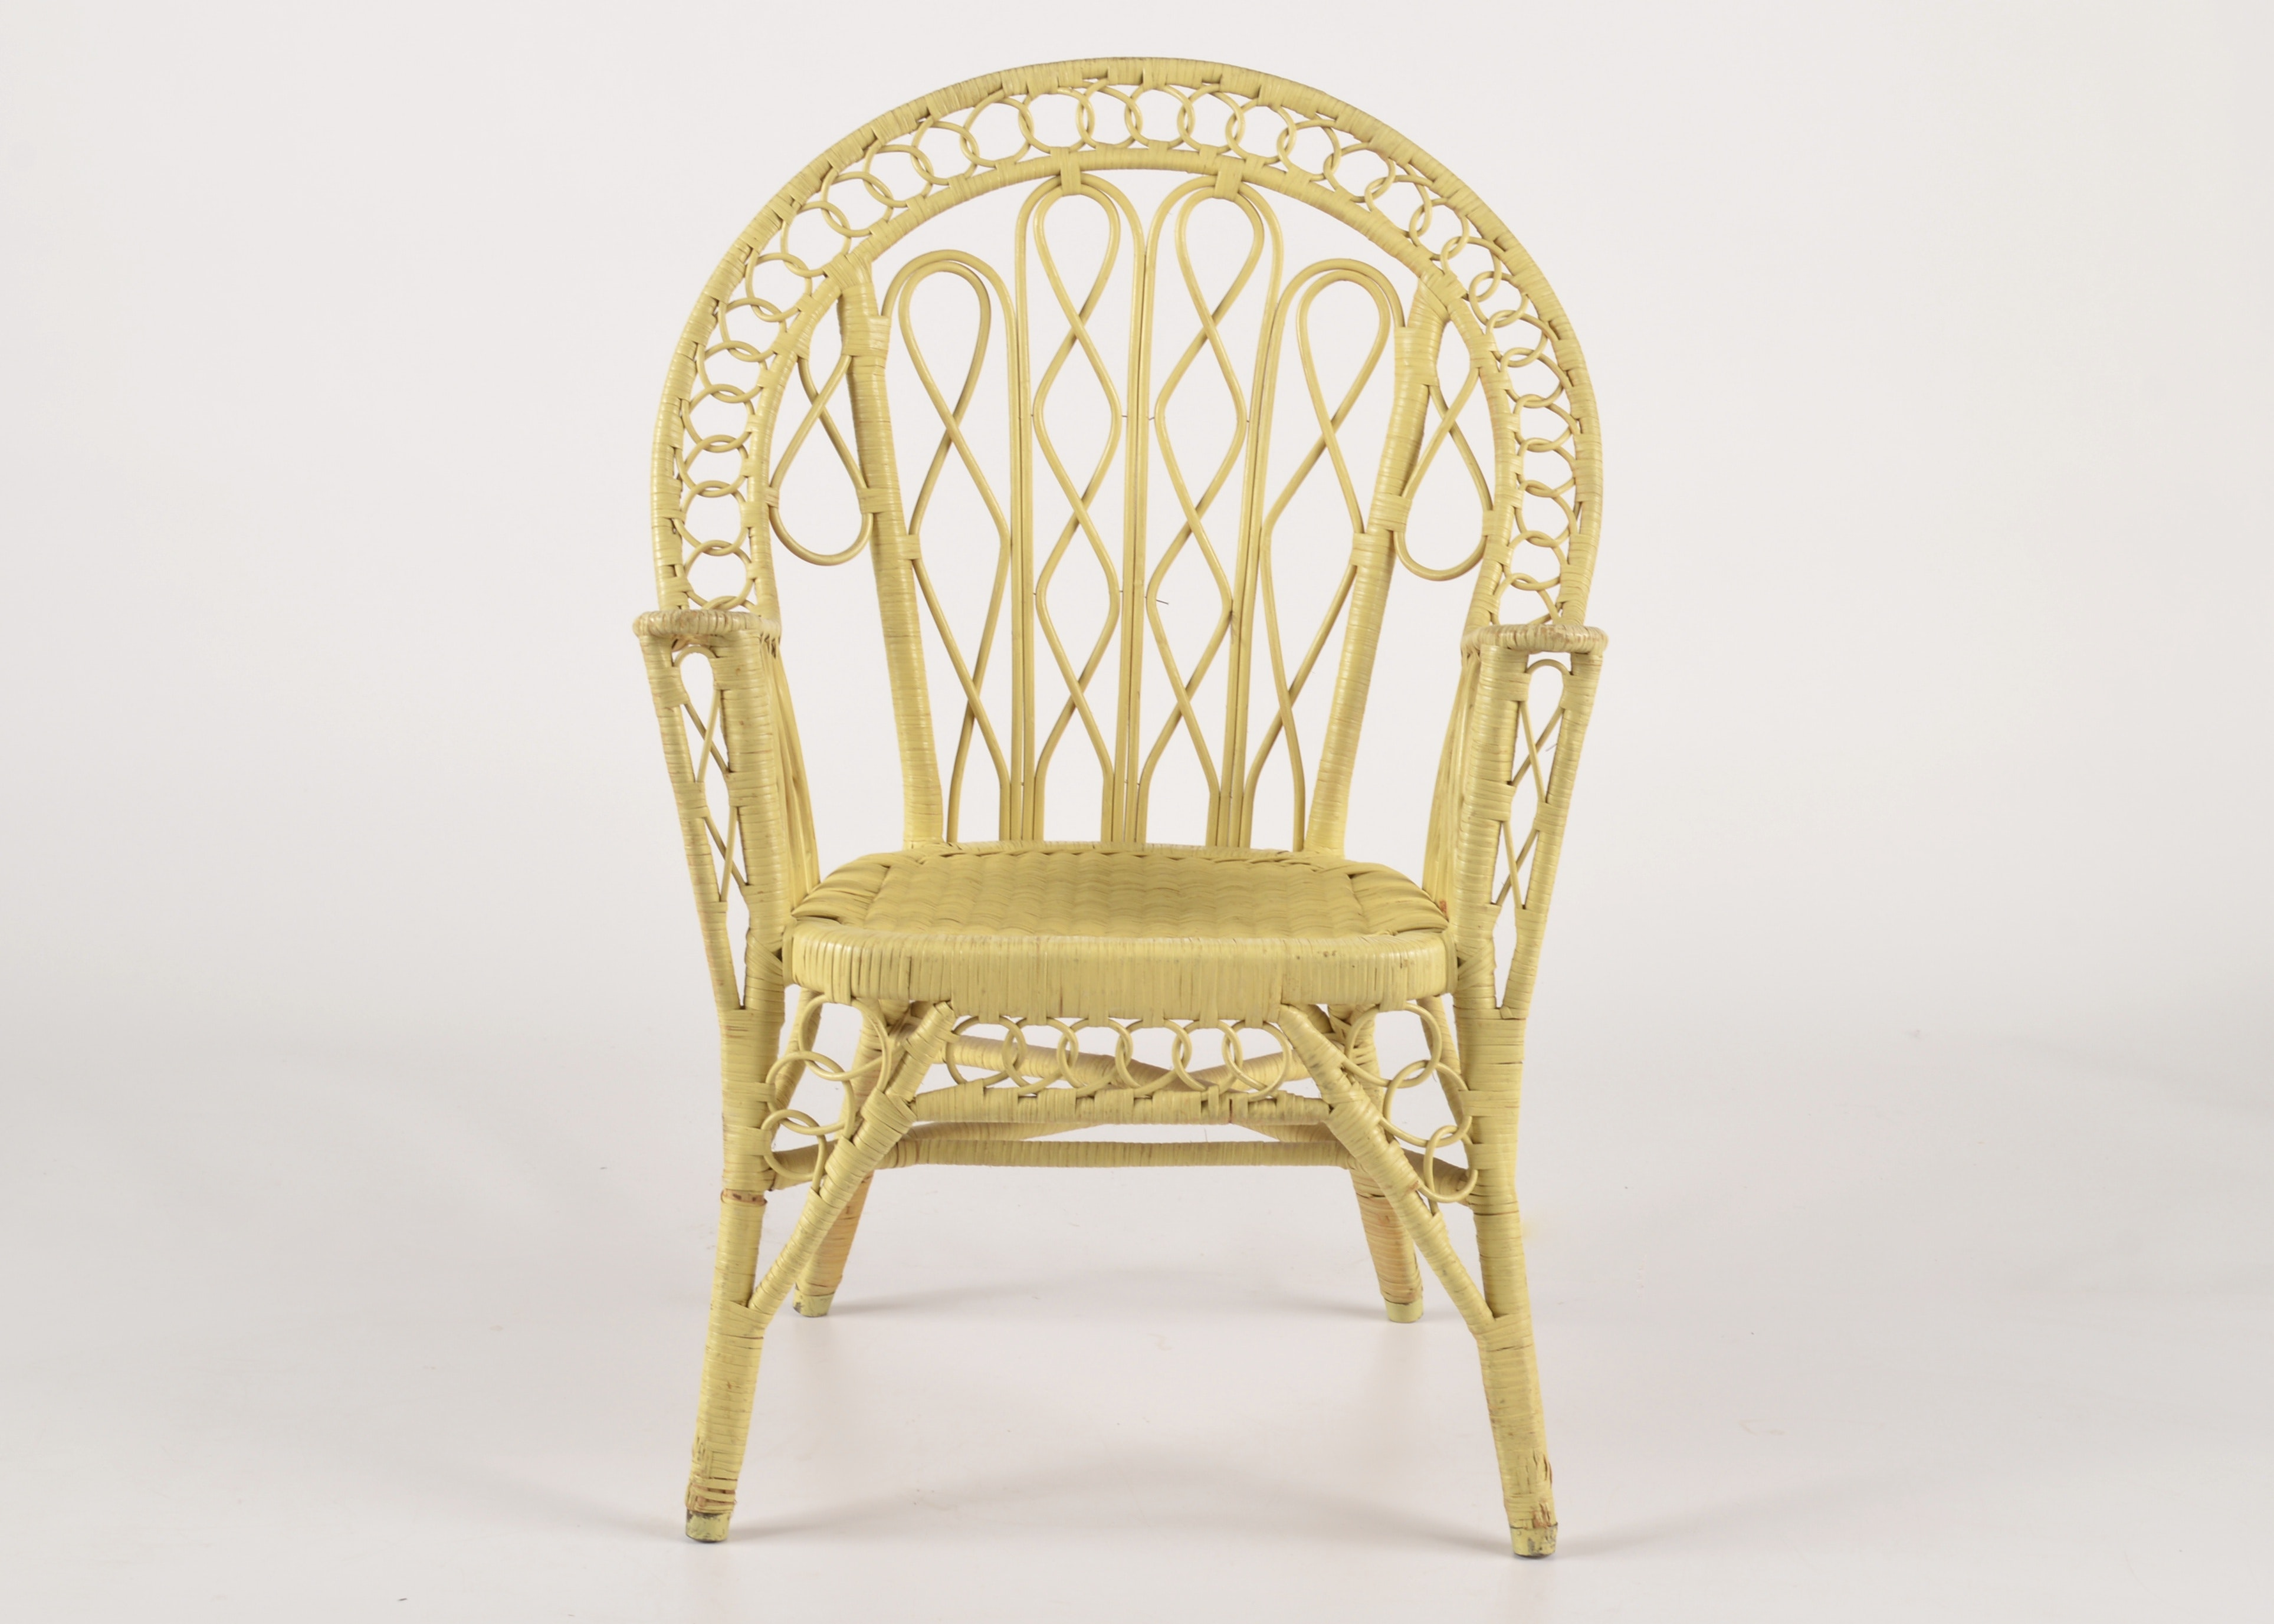 Canary Yellow Wicker Chair